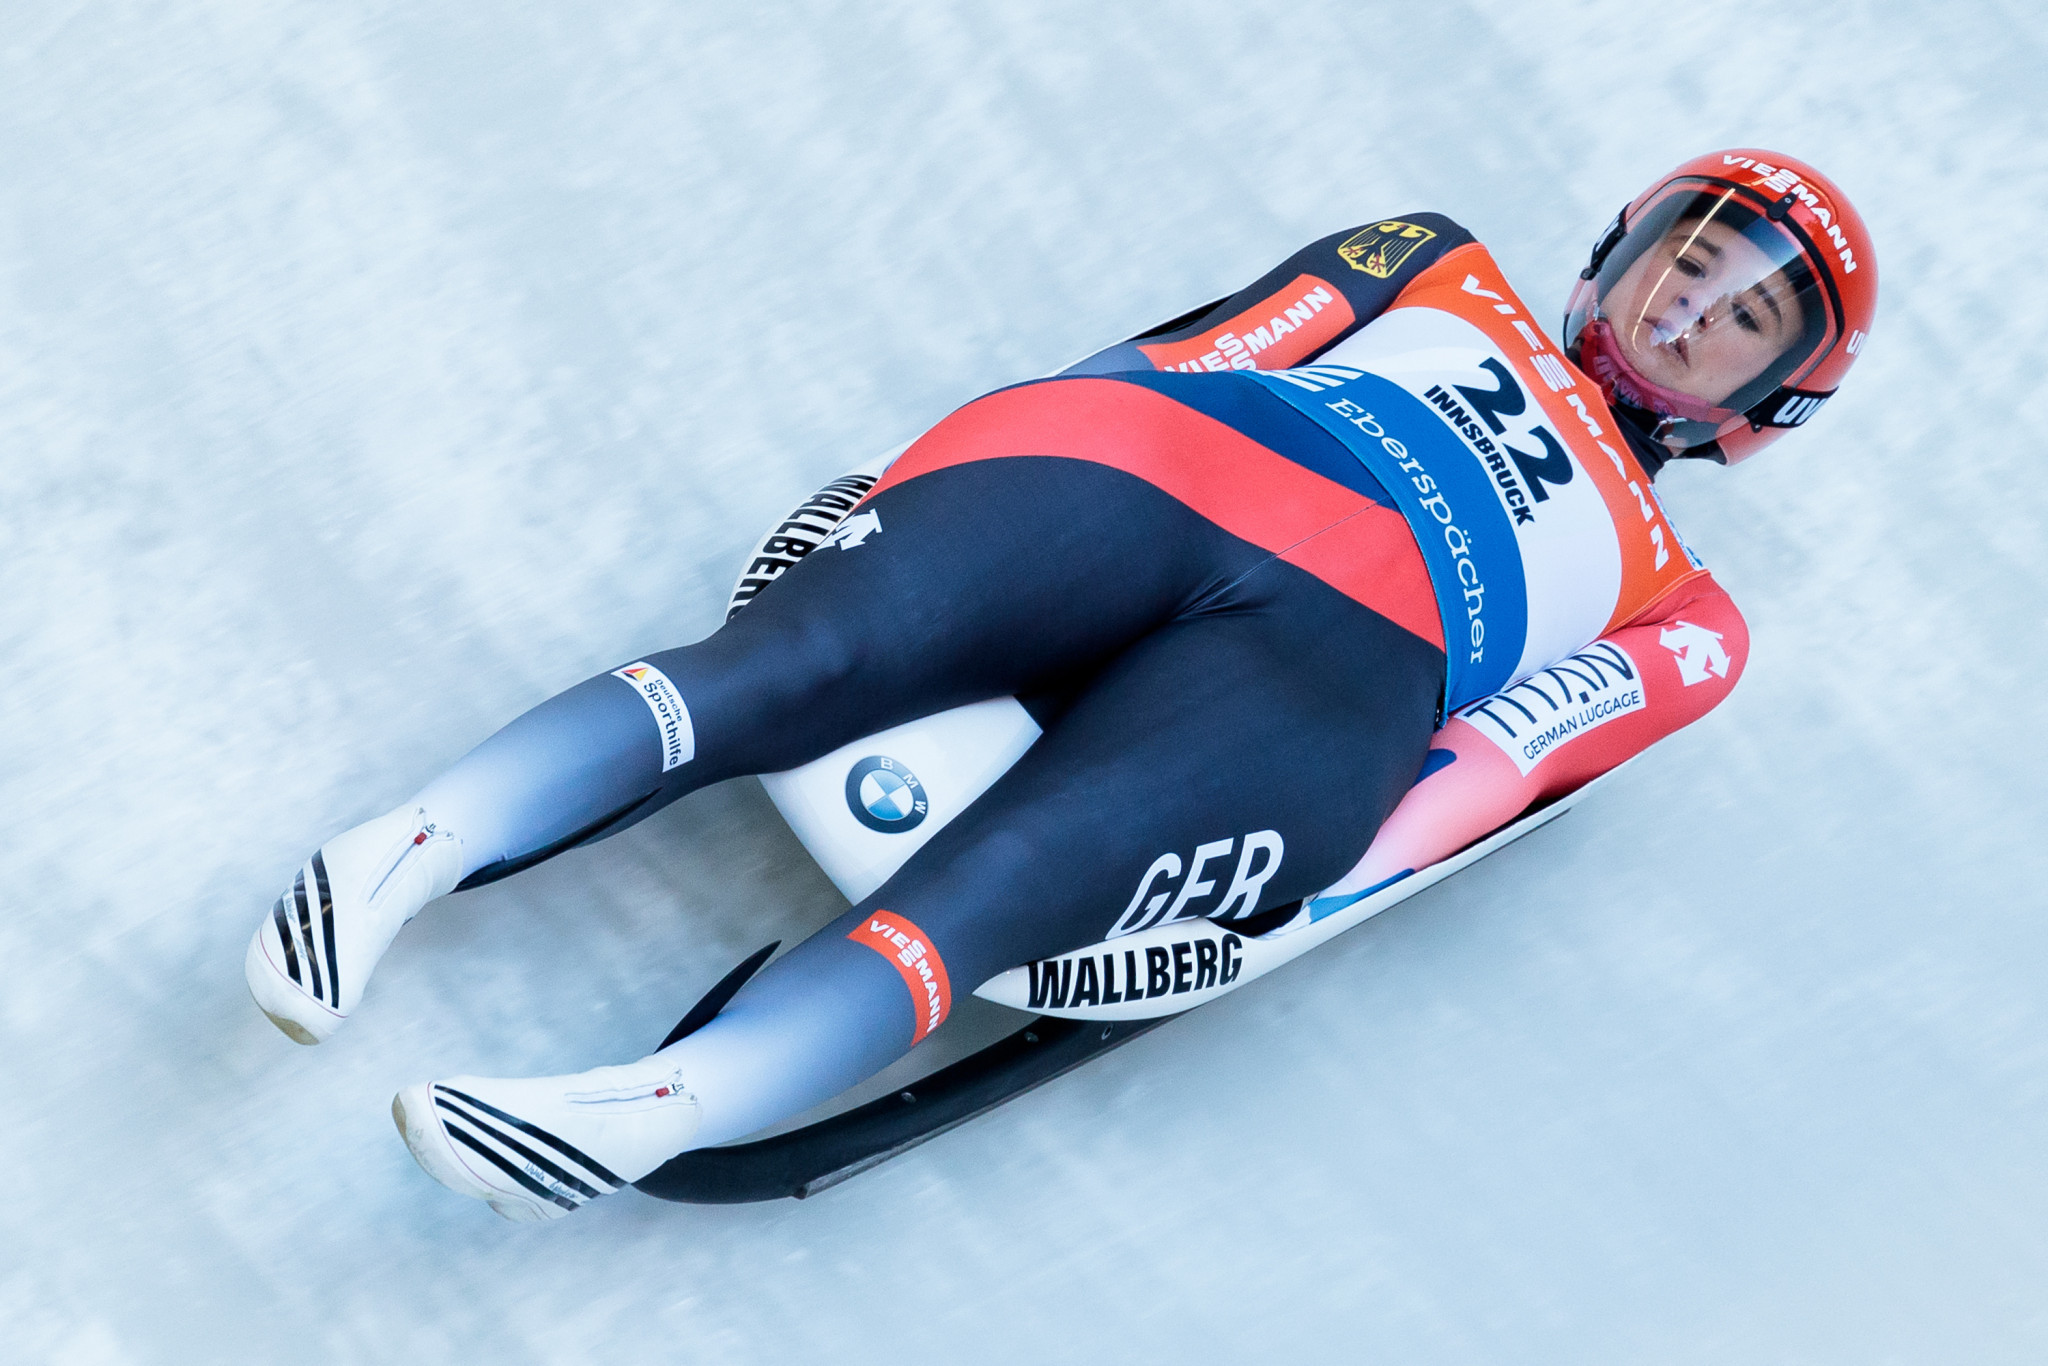 Geisenberger takes gold as Germany secure clean sweep of medals at Luge World Cup